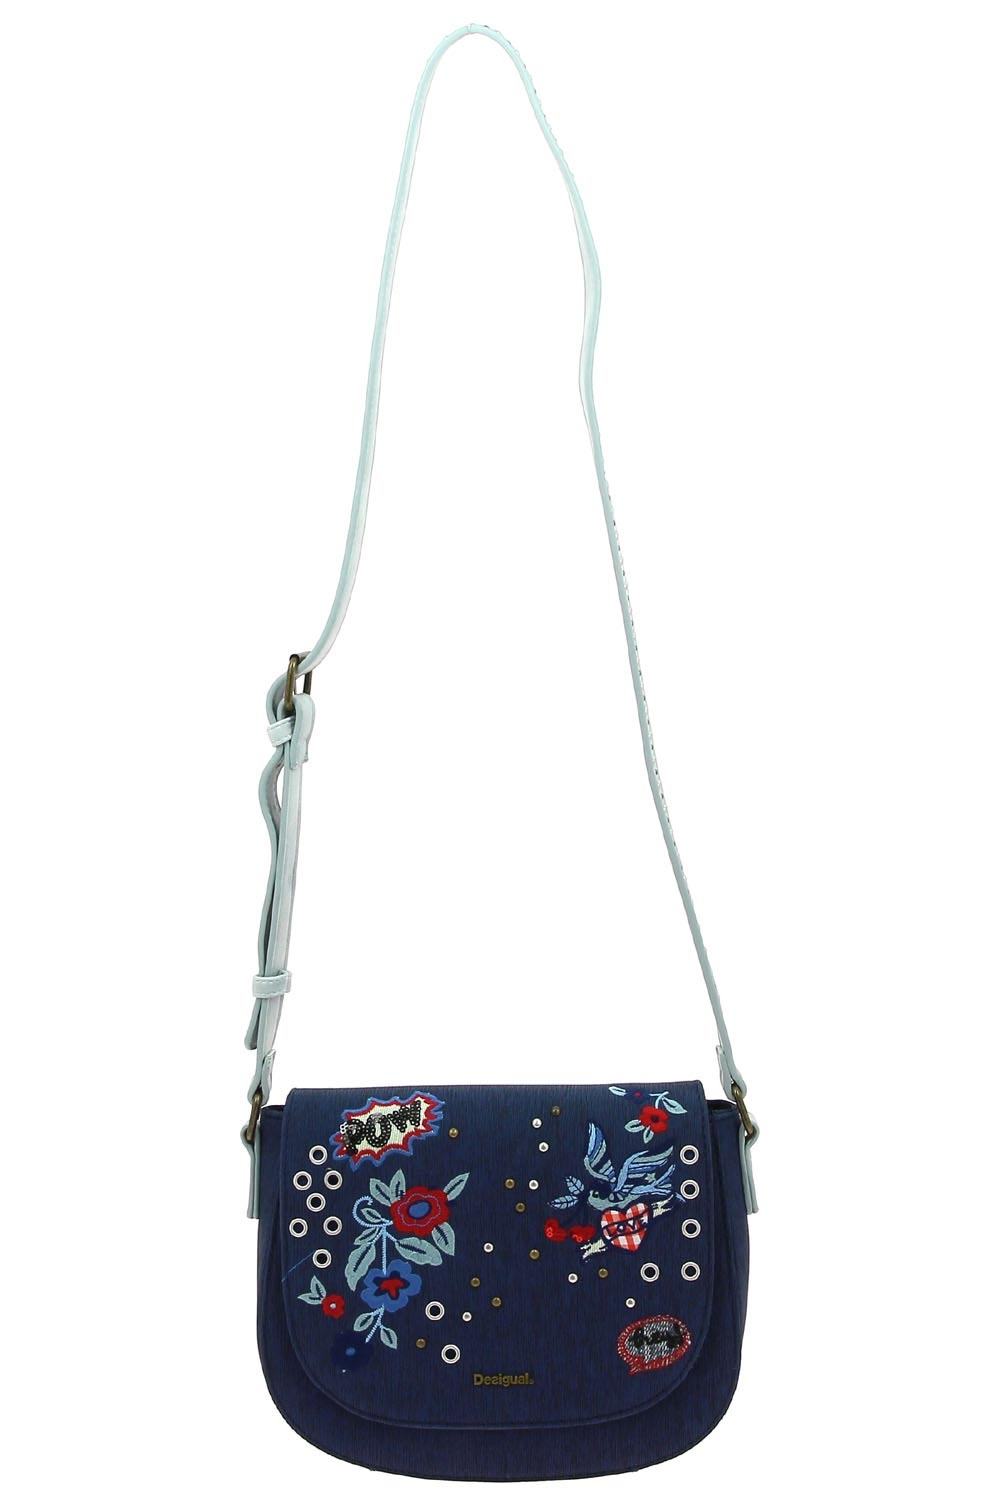 29932df858f0 desigual sac a main 18saxpfw-denim flowers varsovi